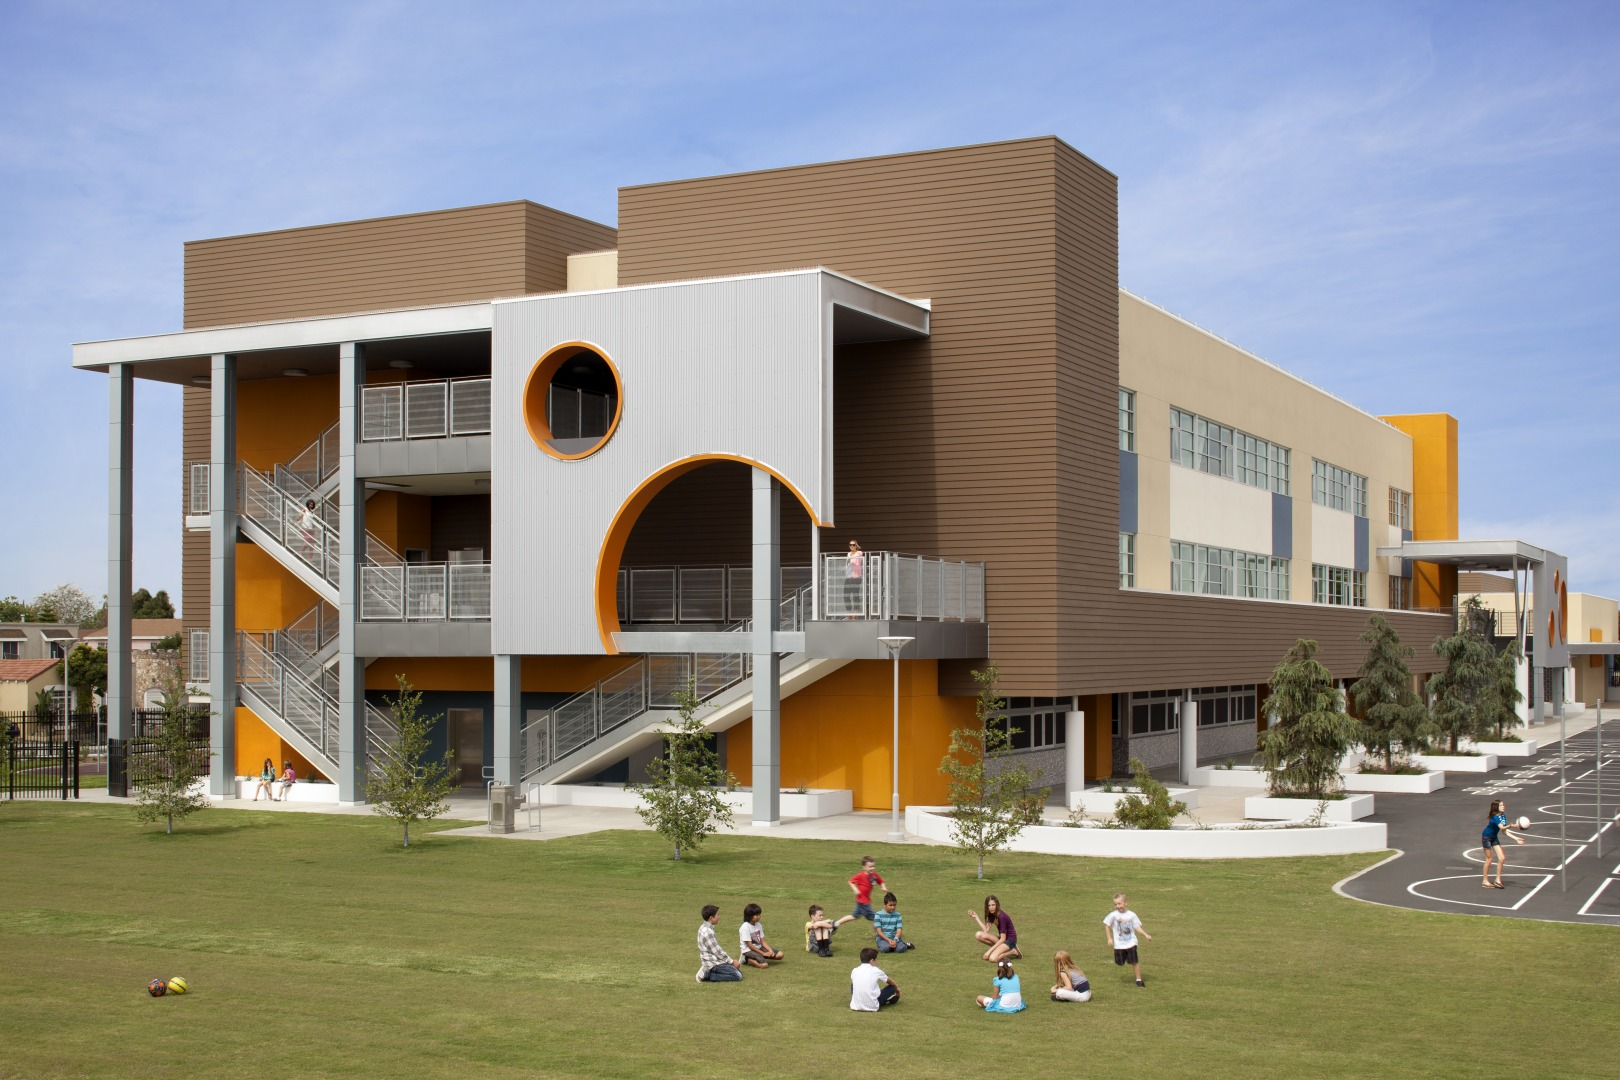 South Region Elementary School 9 Architizer